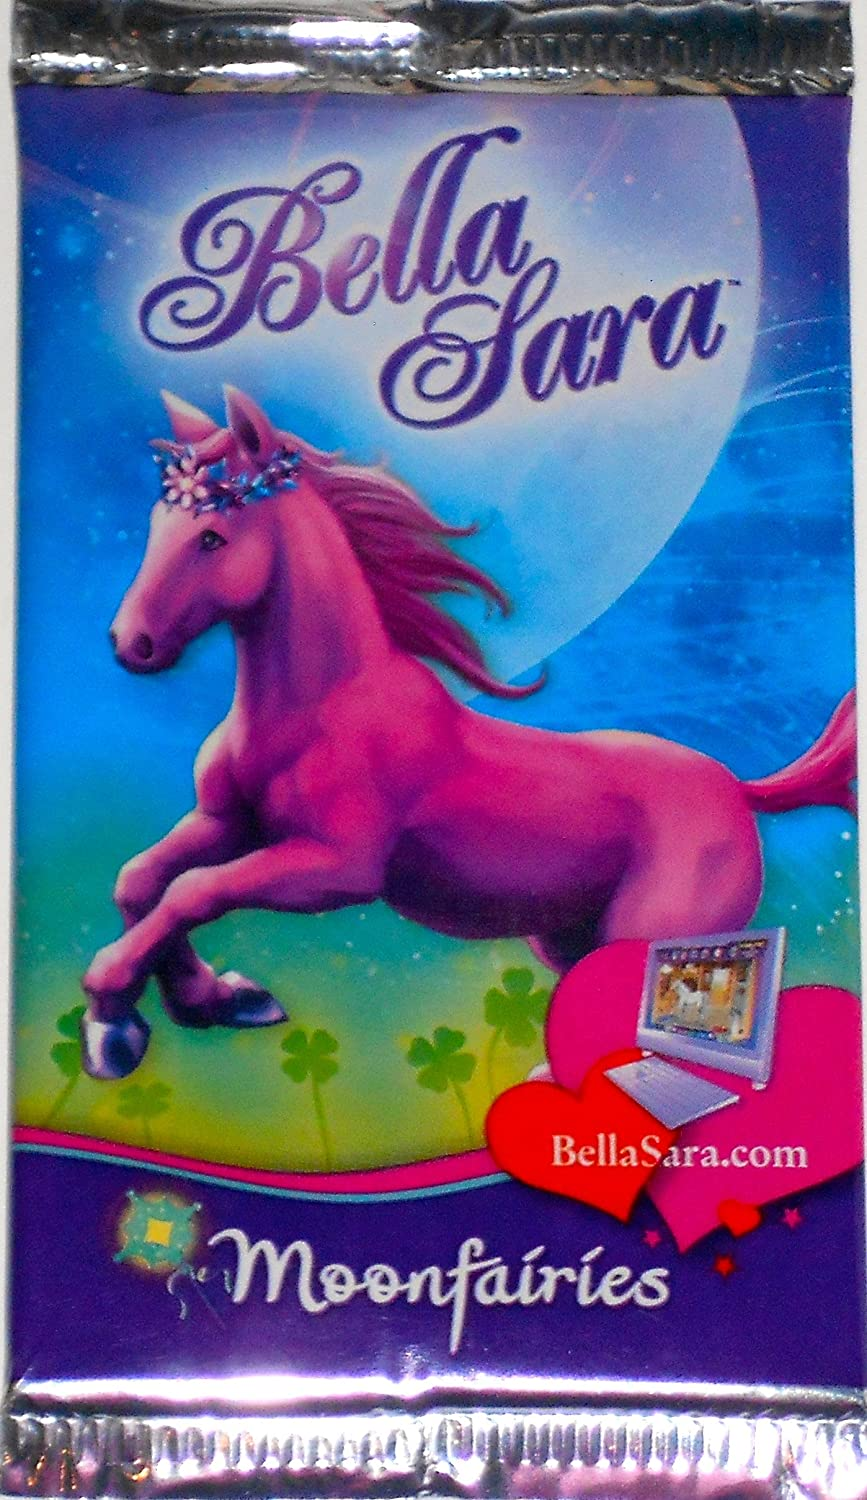 Bella Sara Trading Cards 2nd Series all 4 covers 4 packs